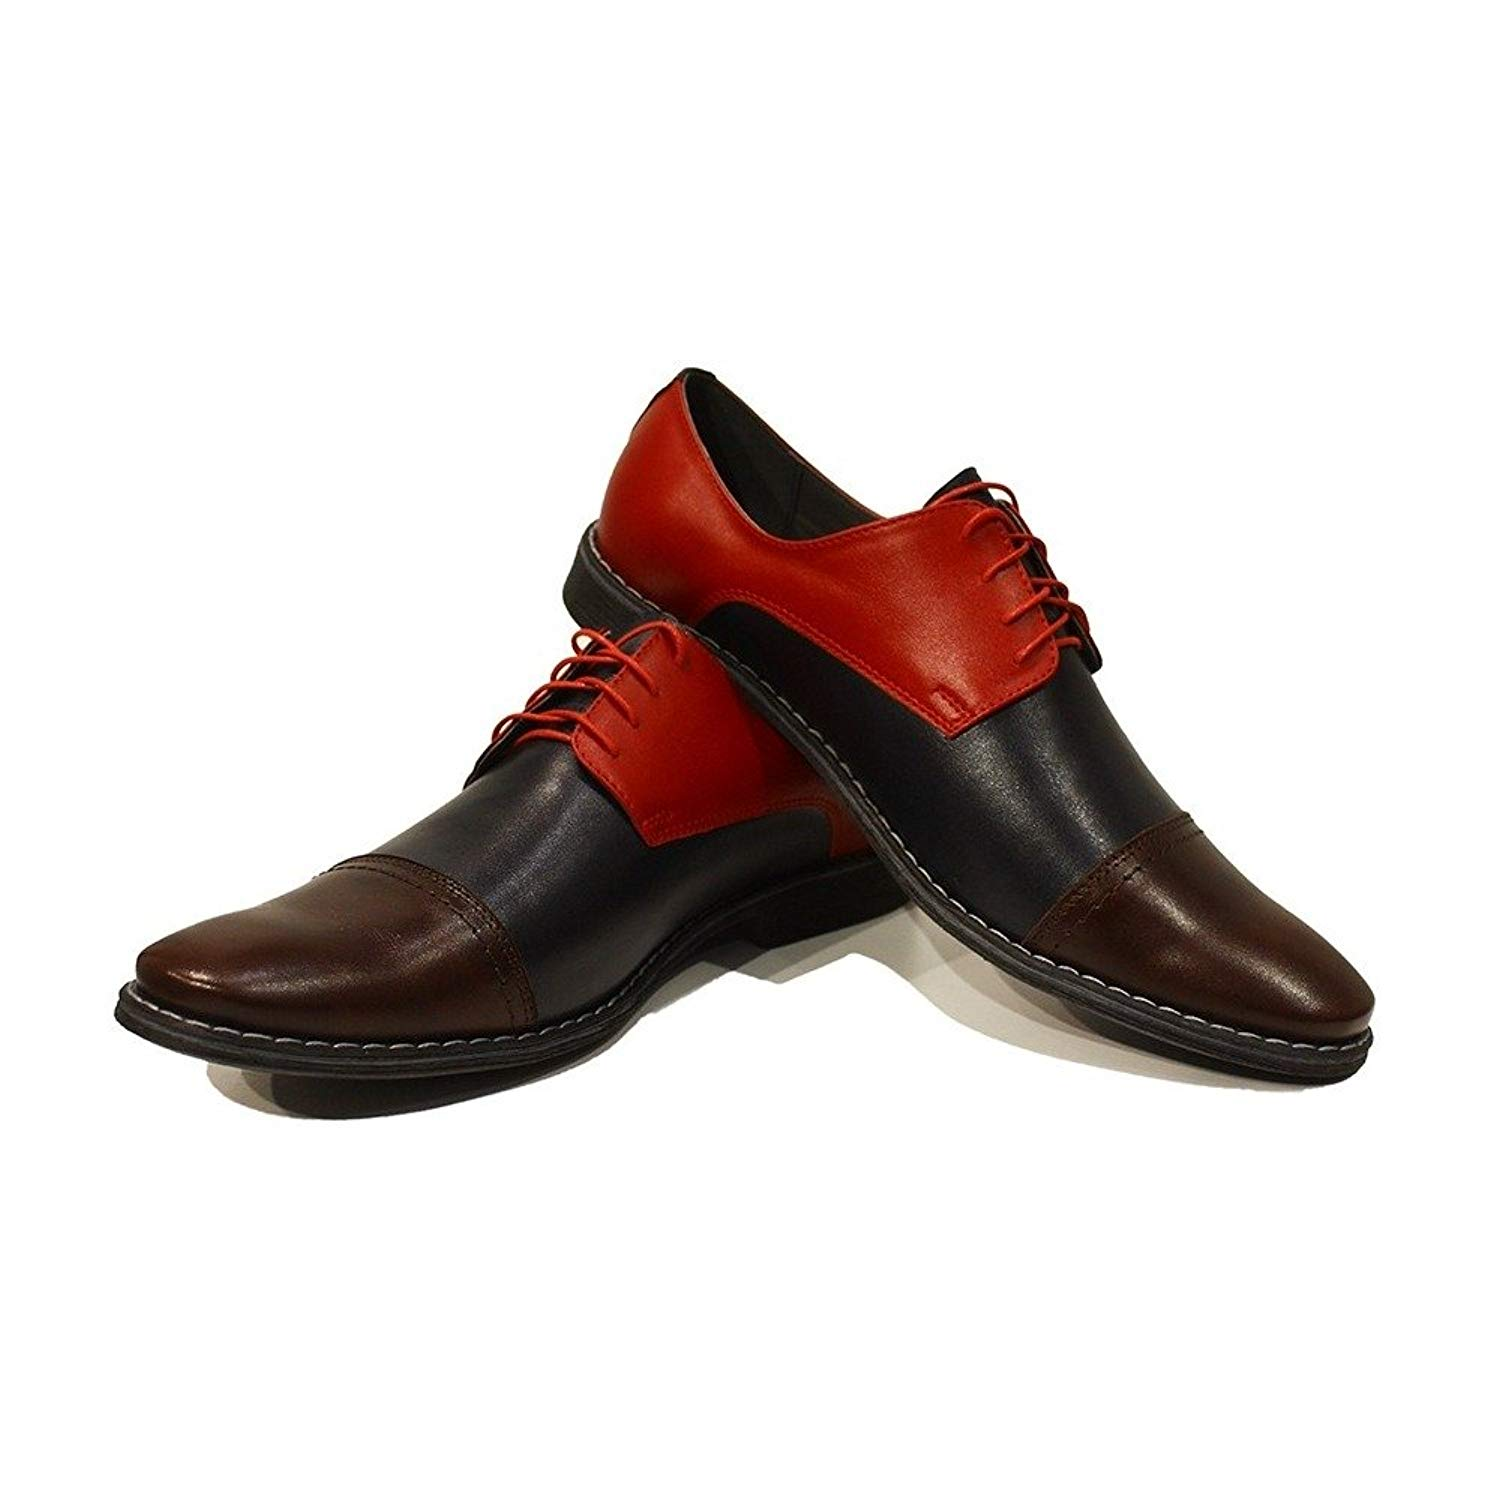 Modello Celestino - Handmade Italian Mens Colorful Oxfords Dress Shoes - Cowhide Smooth Leather - Lace-up